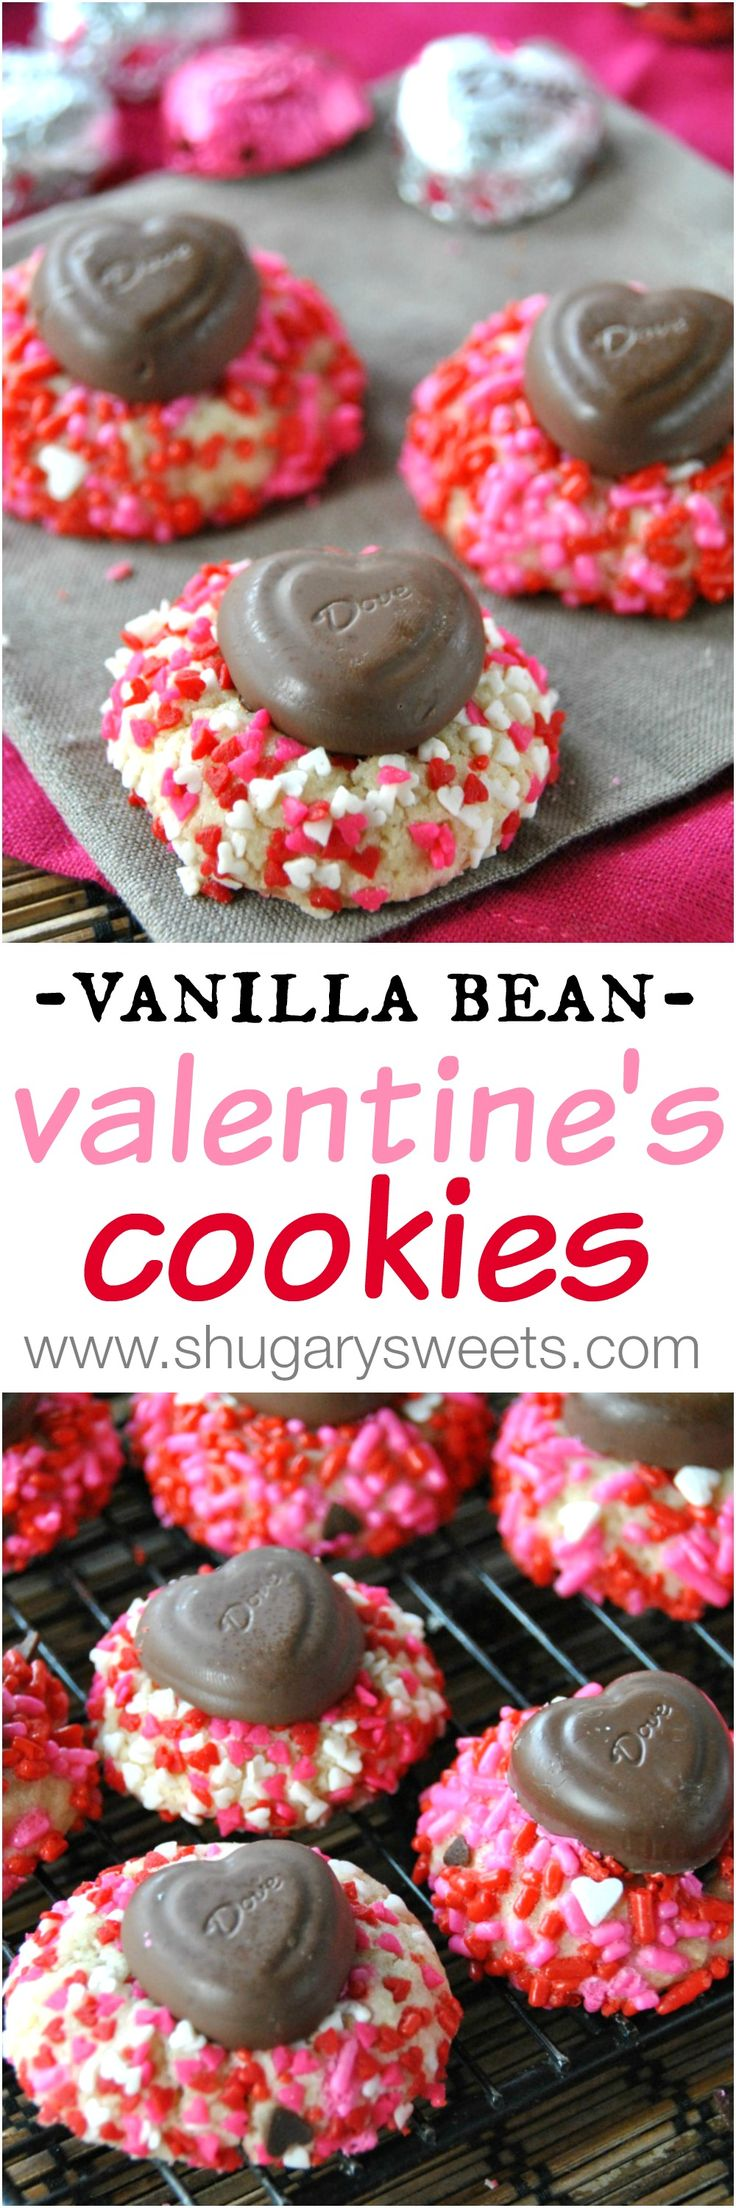 Vanilla Bean Valentine's Day Cookies with #Dove chocolate hearts: delicious gems of a cookie covered in sprinkles